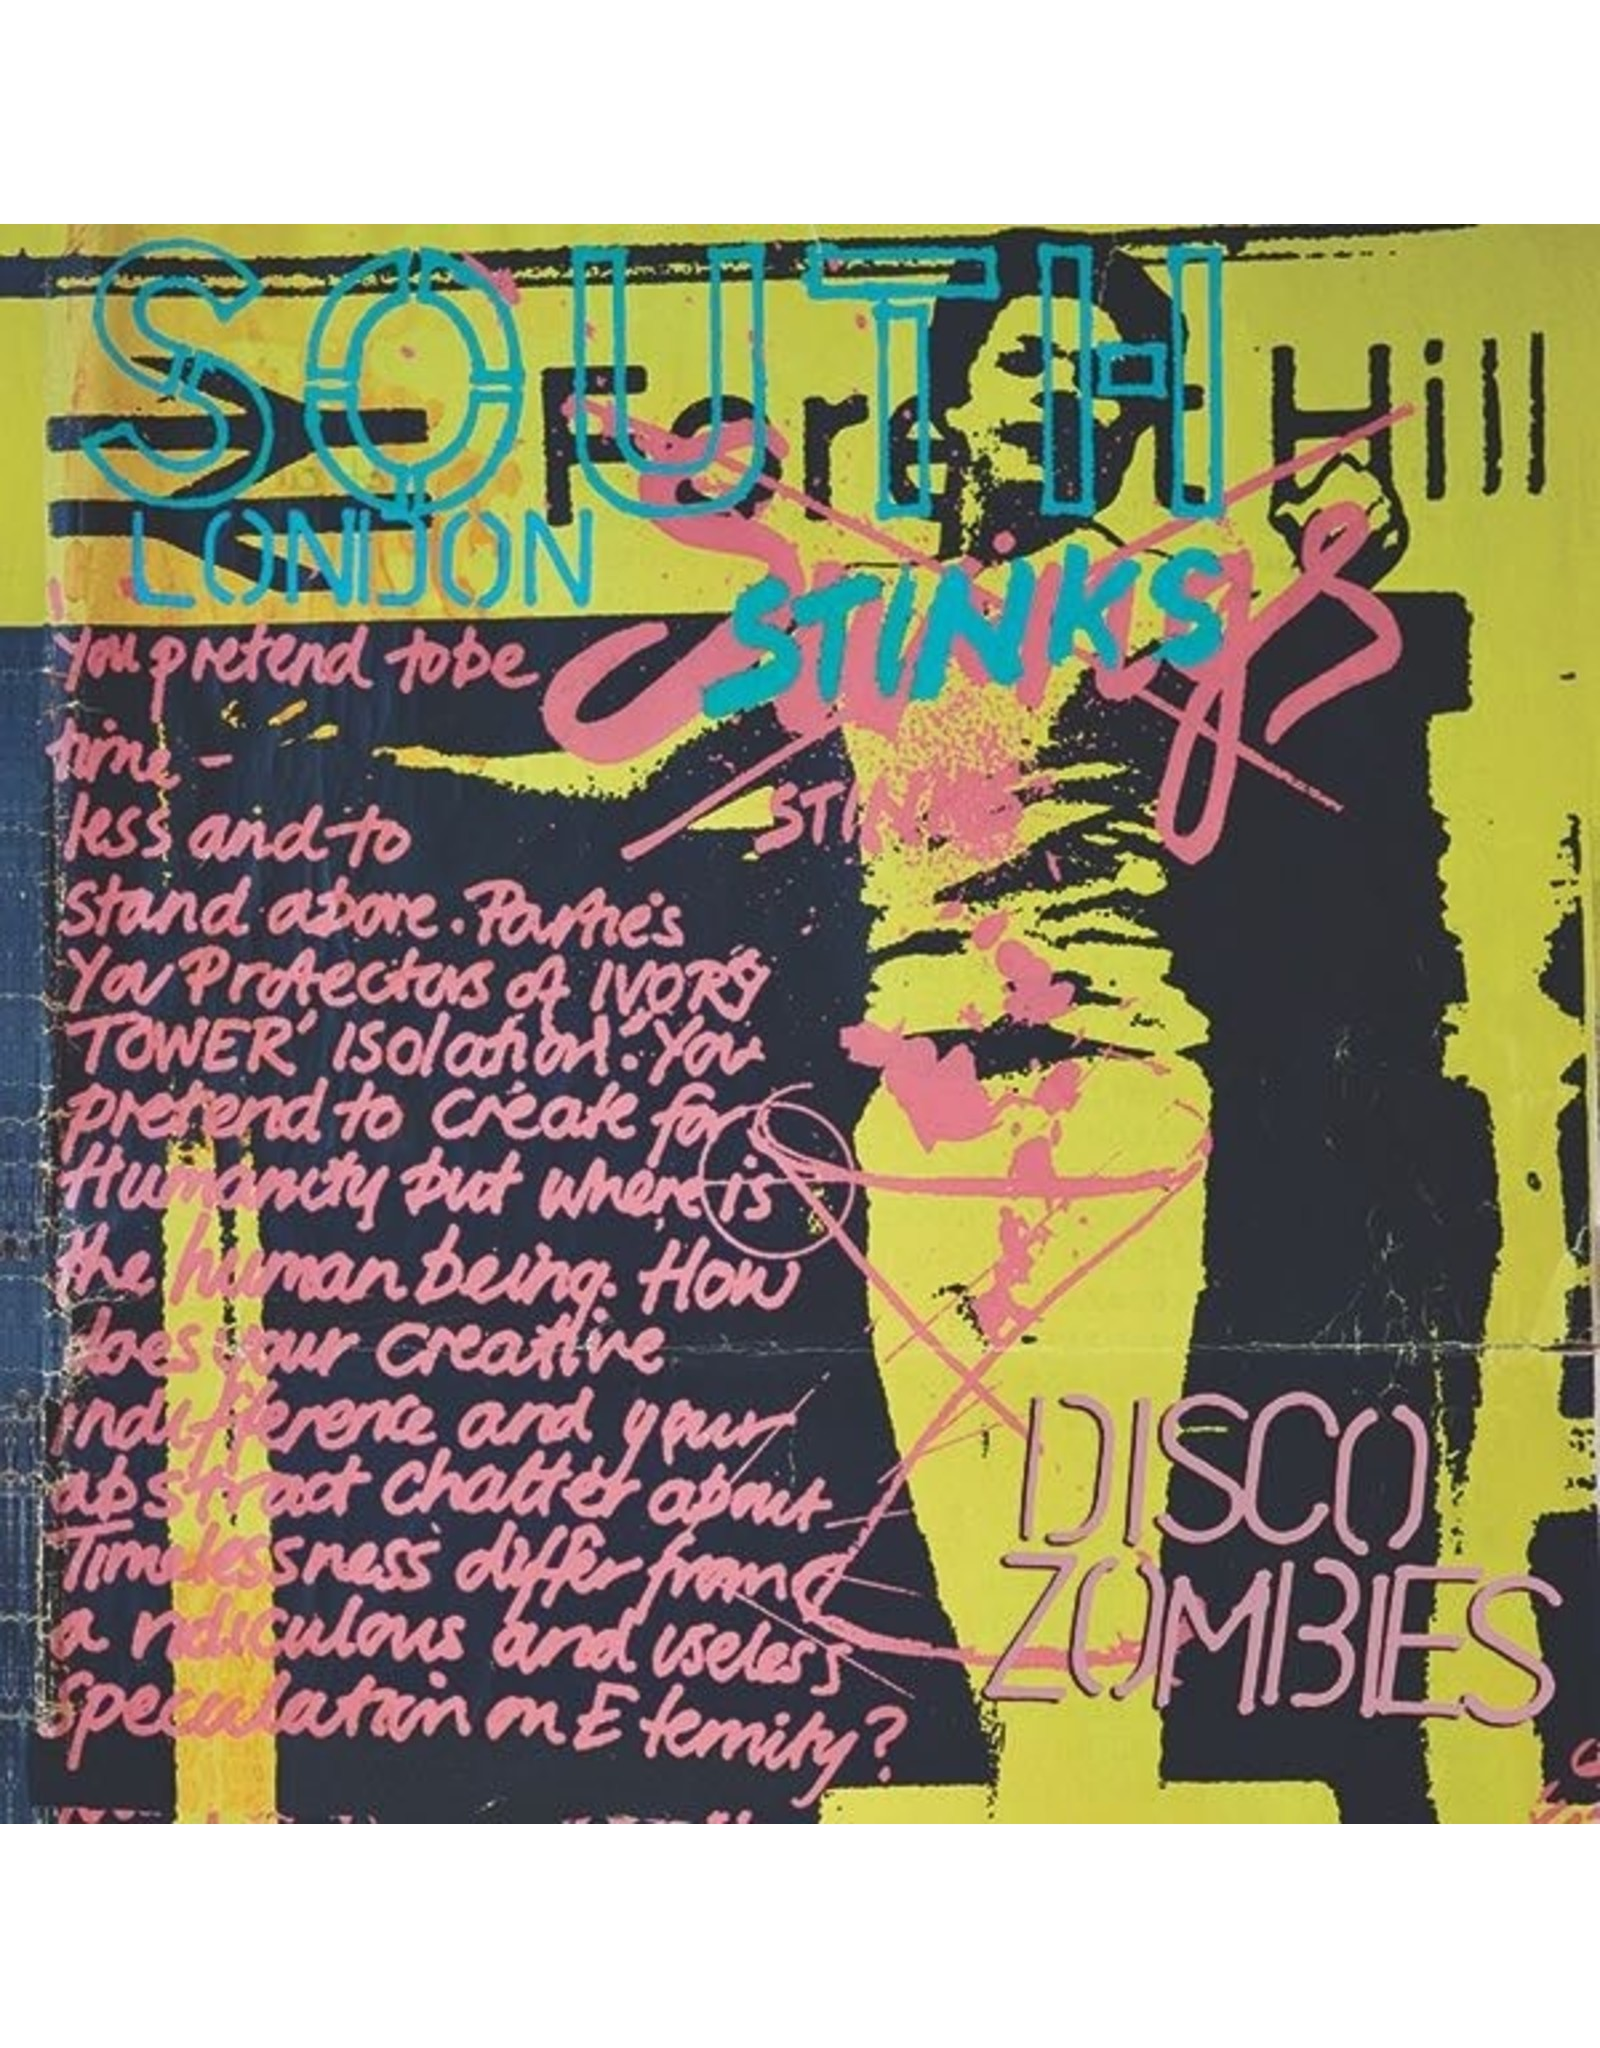 Optic Nerve Disco Zombies: South London Stinks LP